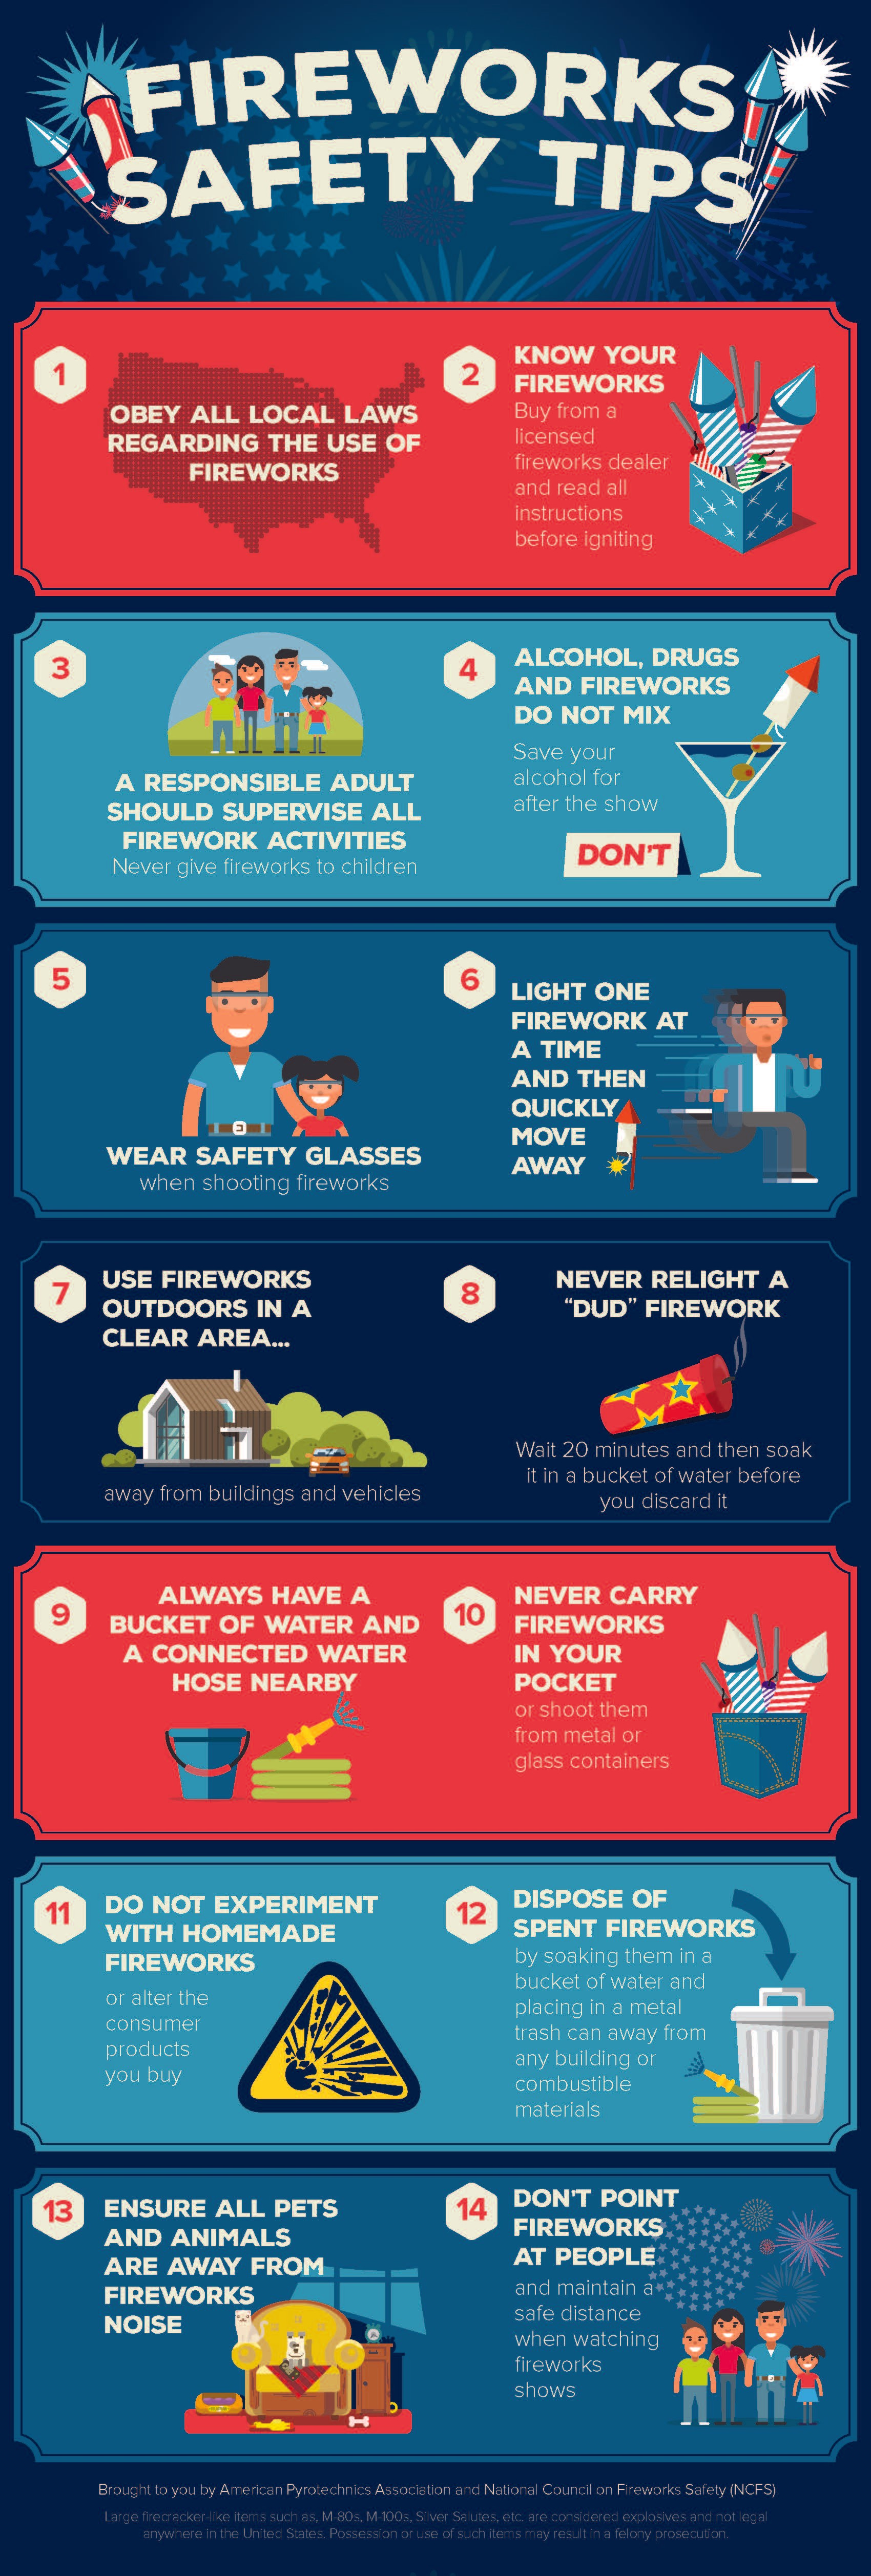 Fireworks Safety Tips - Obey all local laws, know your fireworks, a responsible adult should supervise, alcohol drugs and fireworks do not mix, wear safety glasses, light one at a time, use fireworks outdoors in a clear area, never relight a dud firework, always have a bucket of water and a water hose nearby, never carry fireworks in your pocket, do not experiment with homemade fireworks, dispose of spent fireworks, ensure all pets and animals are away from fireworks, don't point fireworks at people.